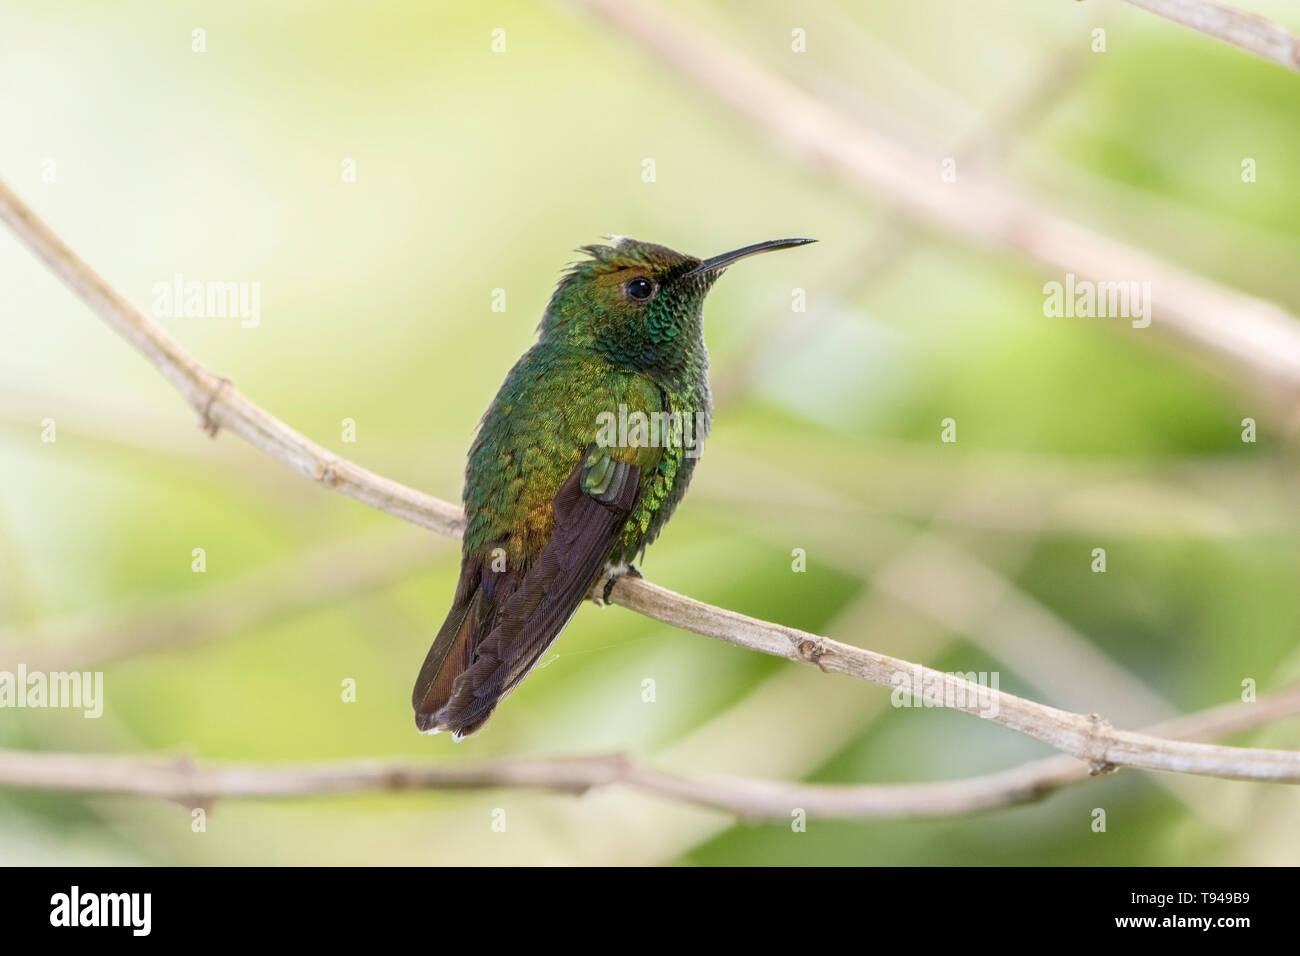 coppery-headed emerald hummingbird Elvirs cupreiceps adult male perched on branch in forest, Costa Rica - Stock Image